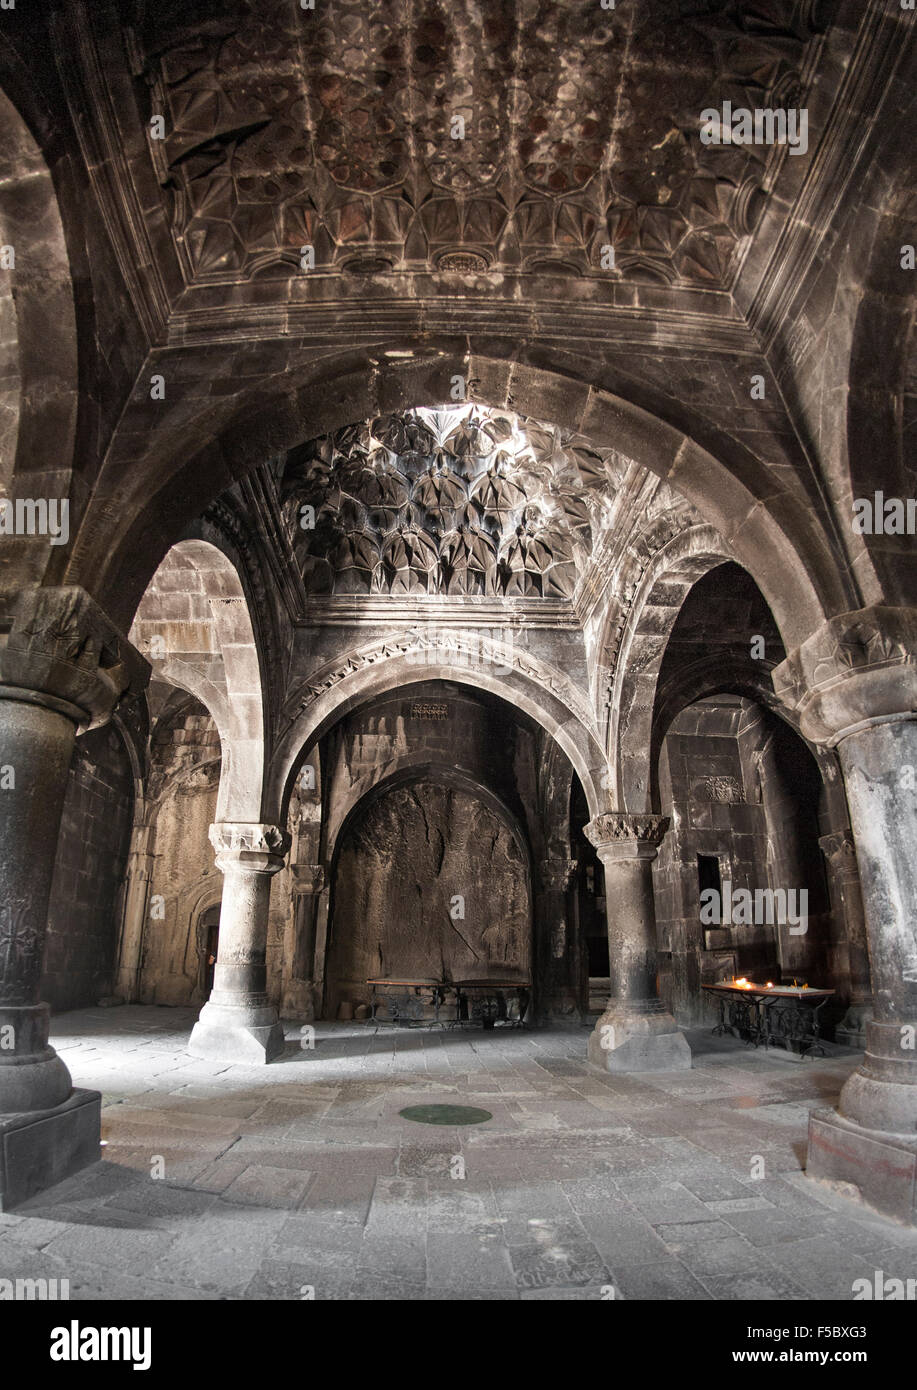 Gavit of the Geghard monastery in Armenia. - Stock Image